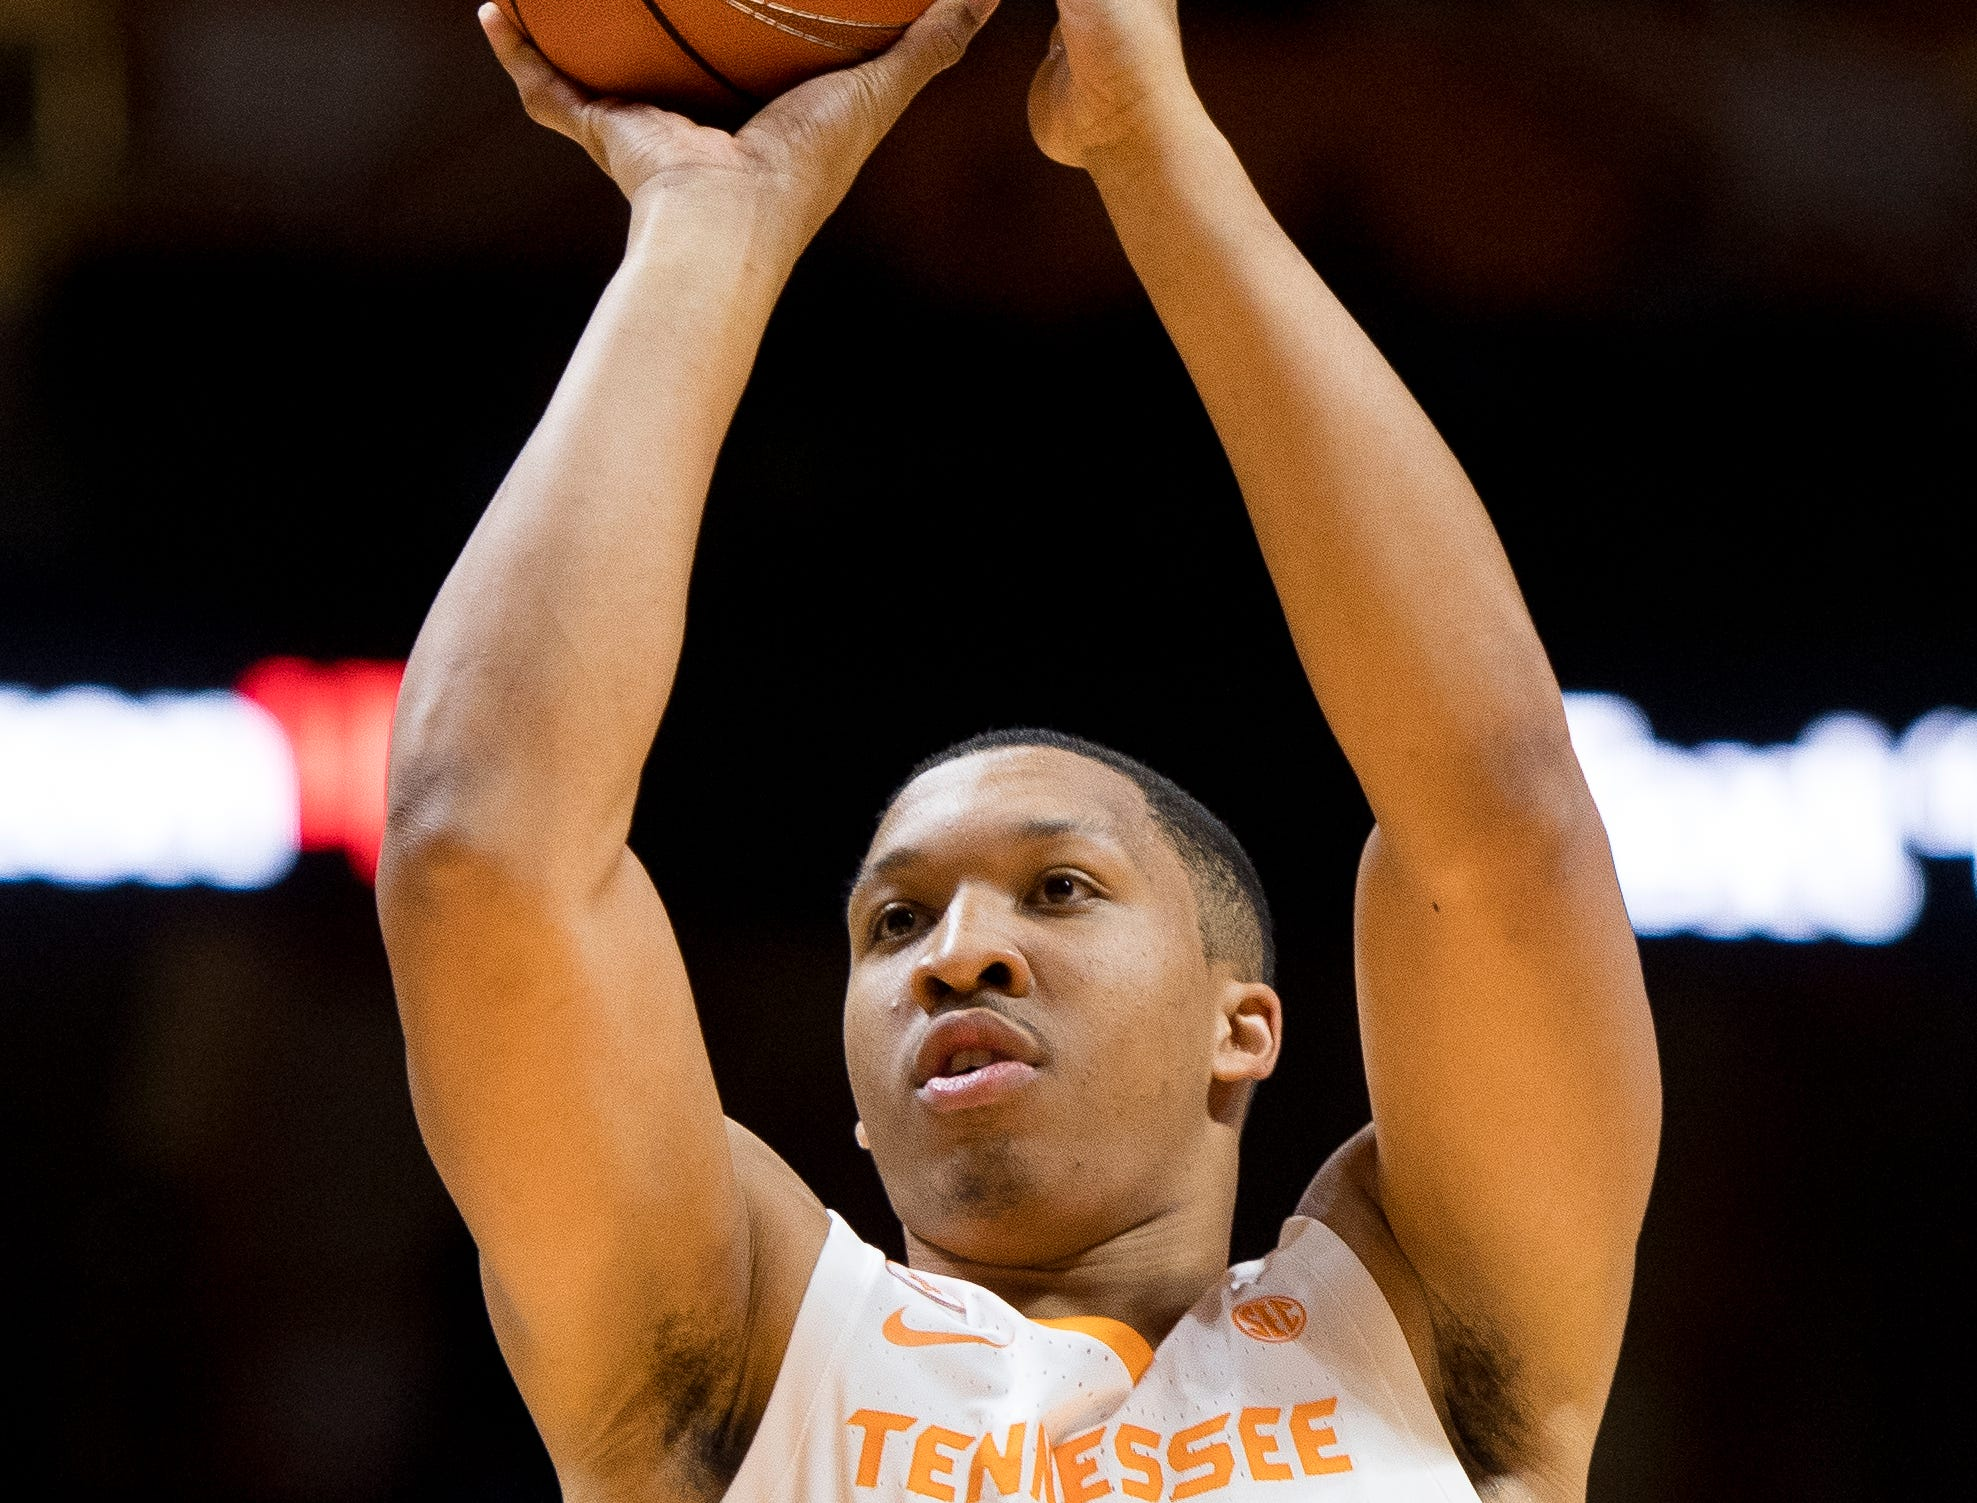 Tennessee forward Grant Williams (2) attempts a shot during Tennessee's basketball game against Lenoir-Rhyne at Thompson-Boling Arena in Knoxville on Tuesday, November 6, 2018.